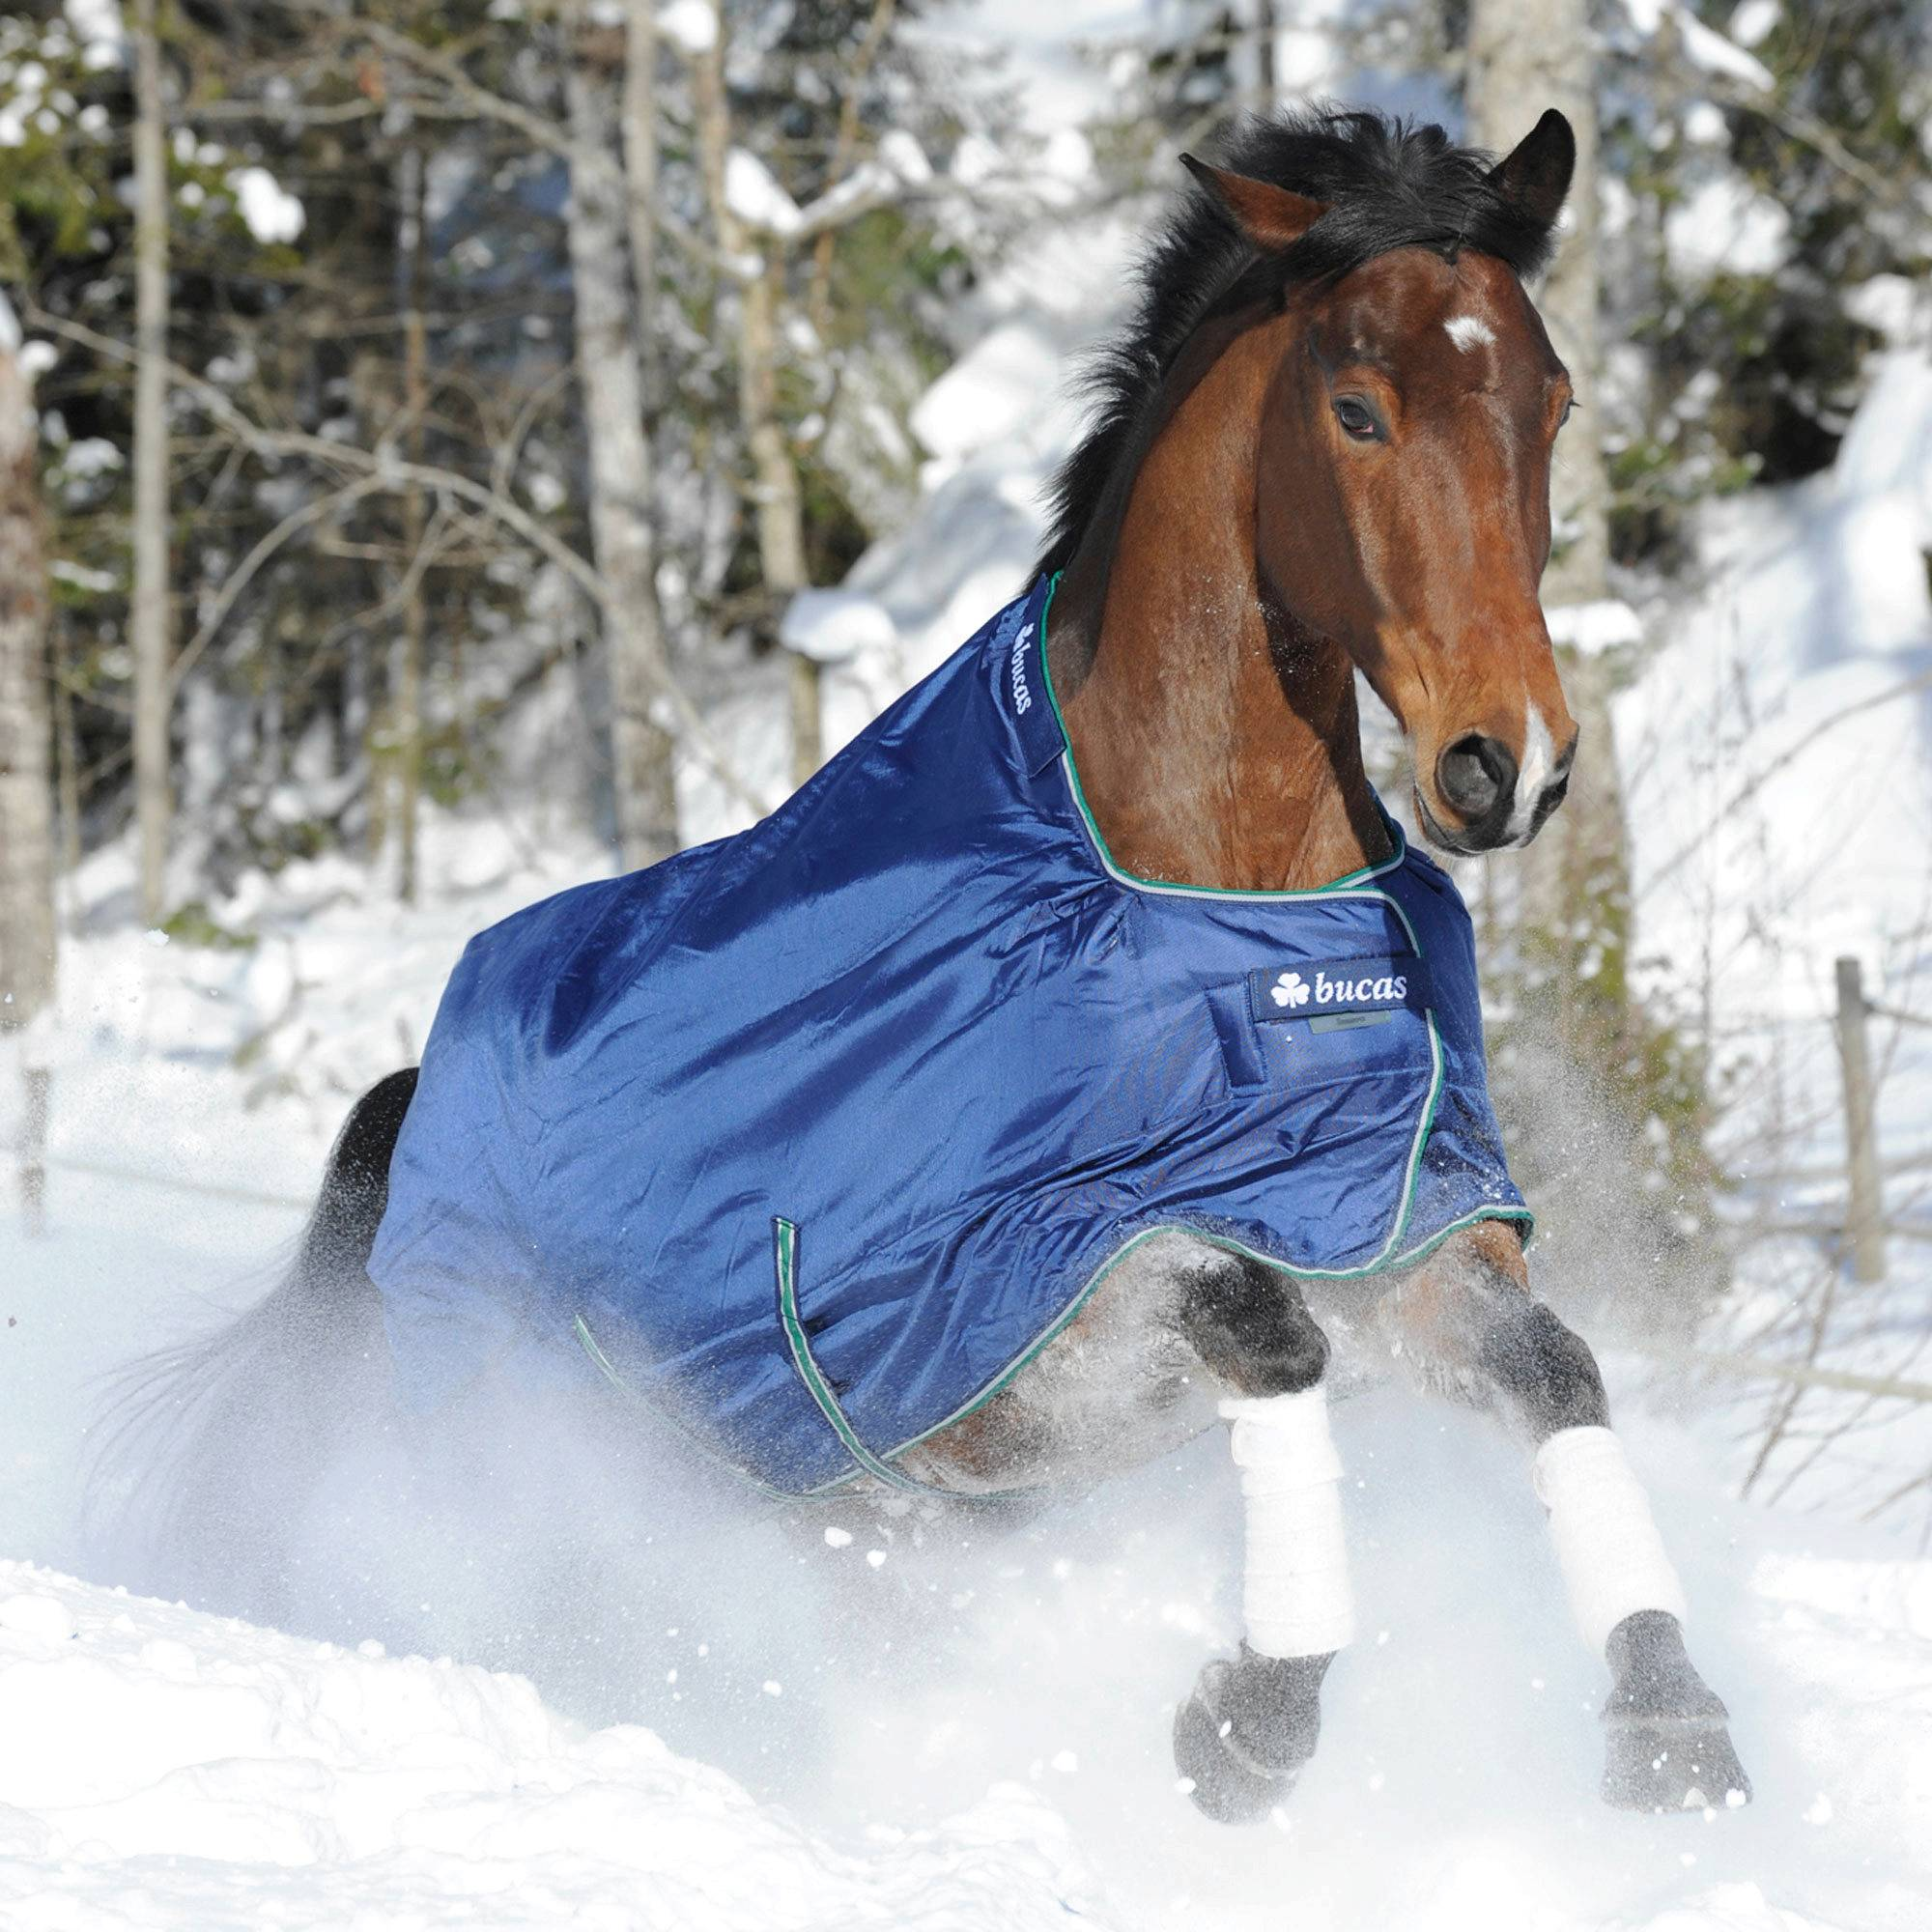 Bucas Smartex Heavy Weight Turnout Blanket